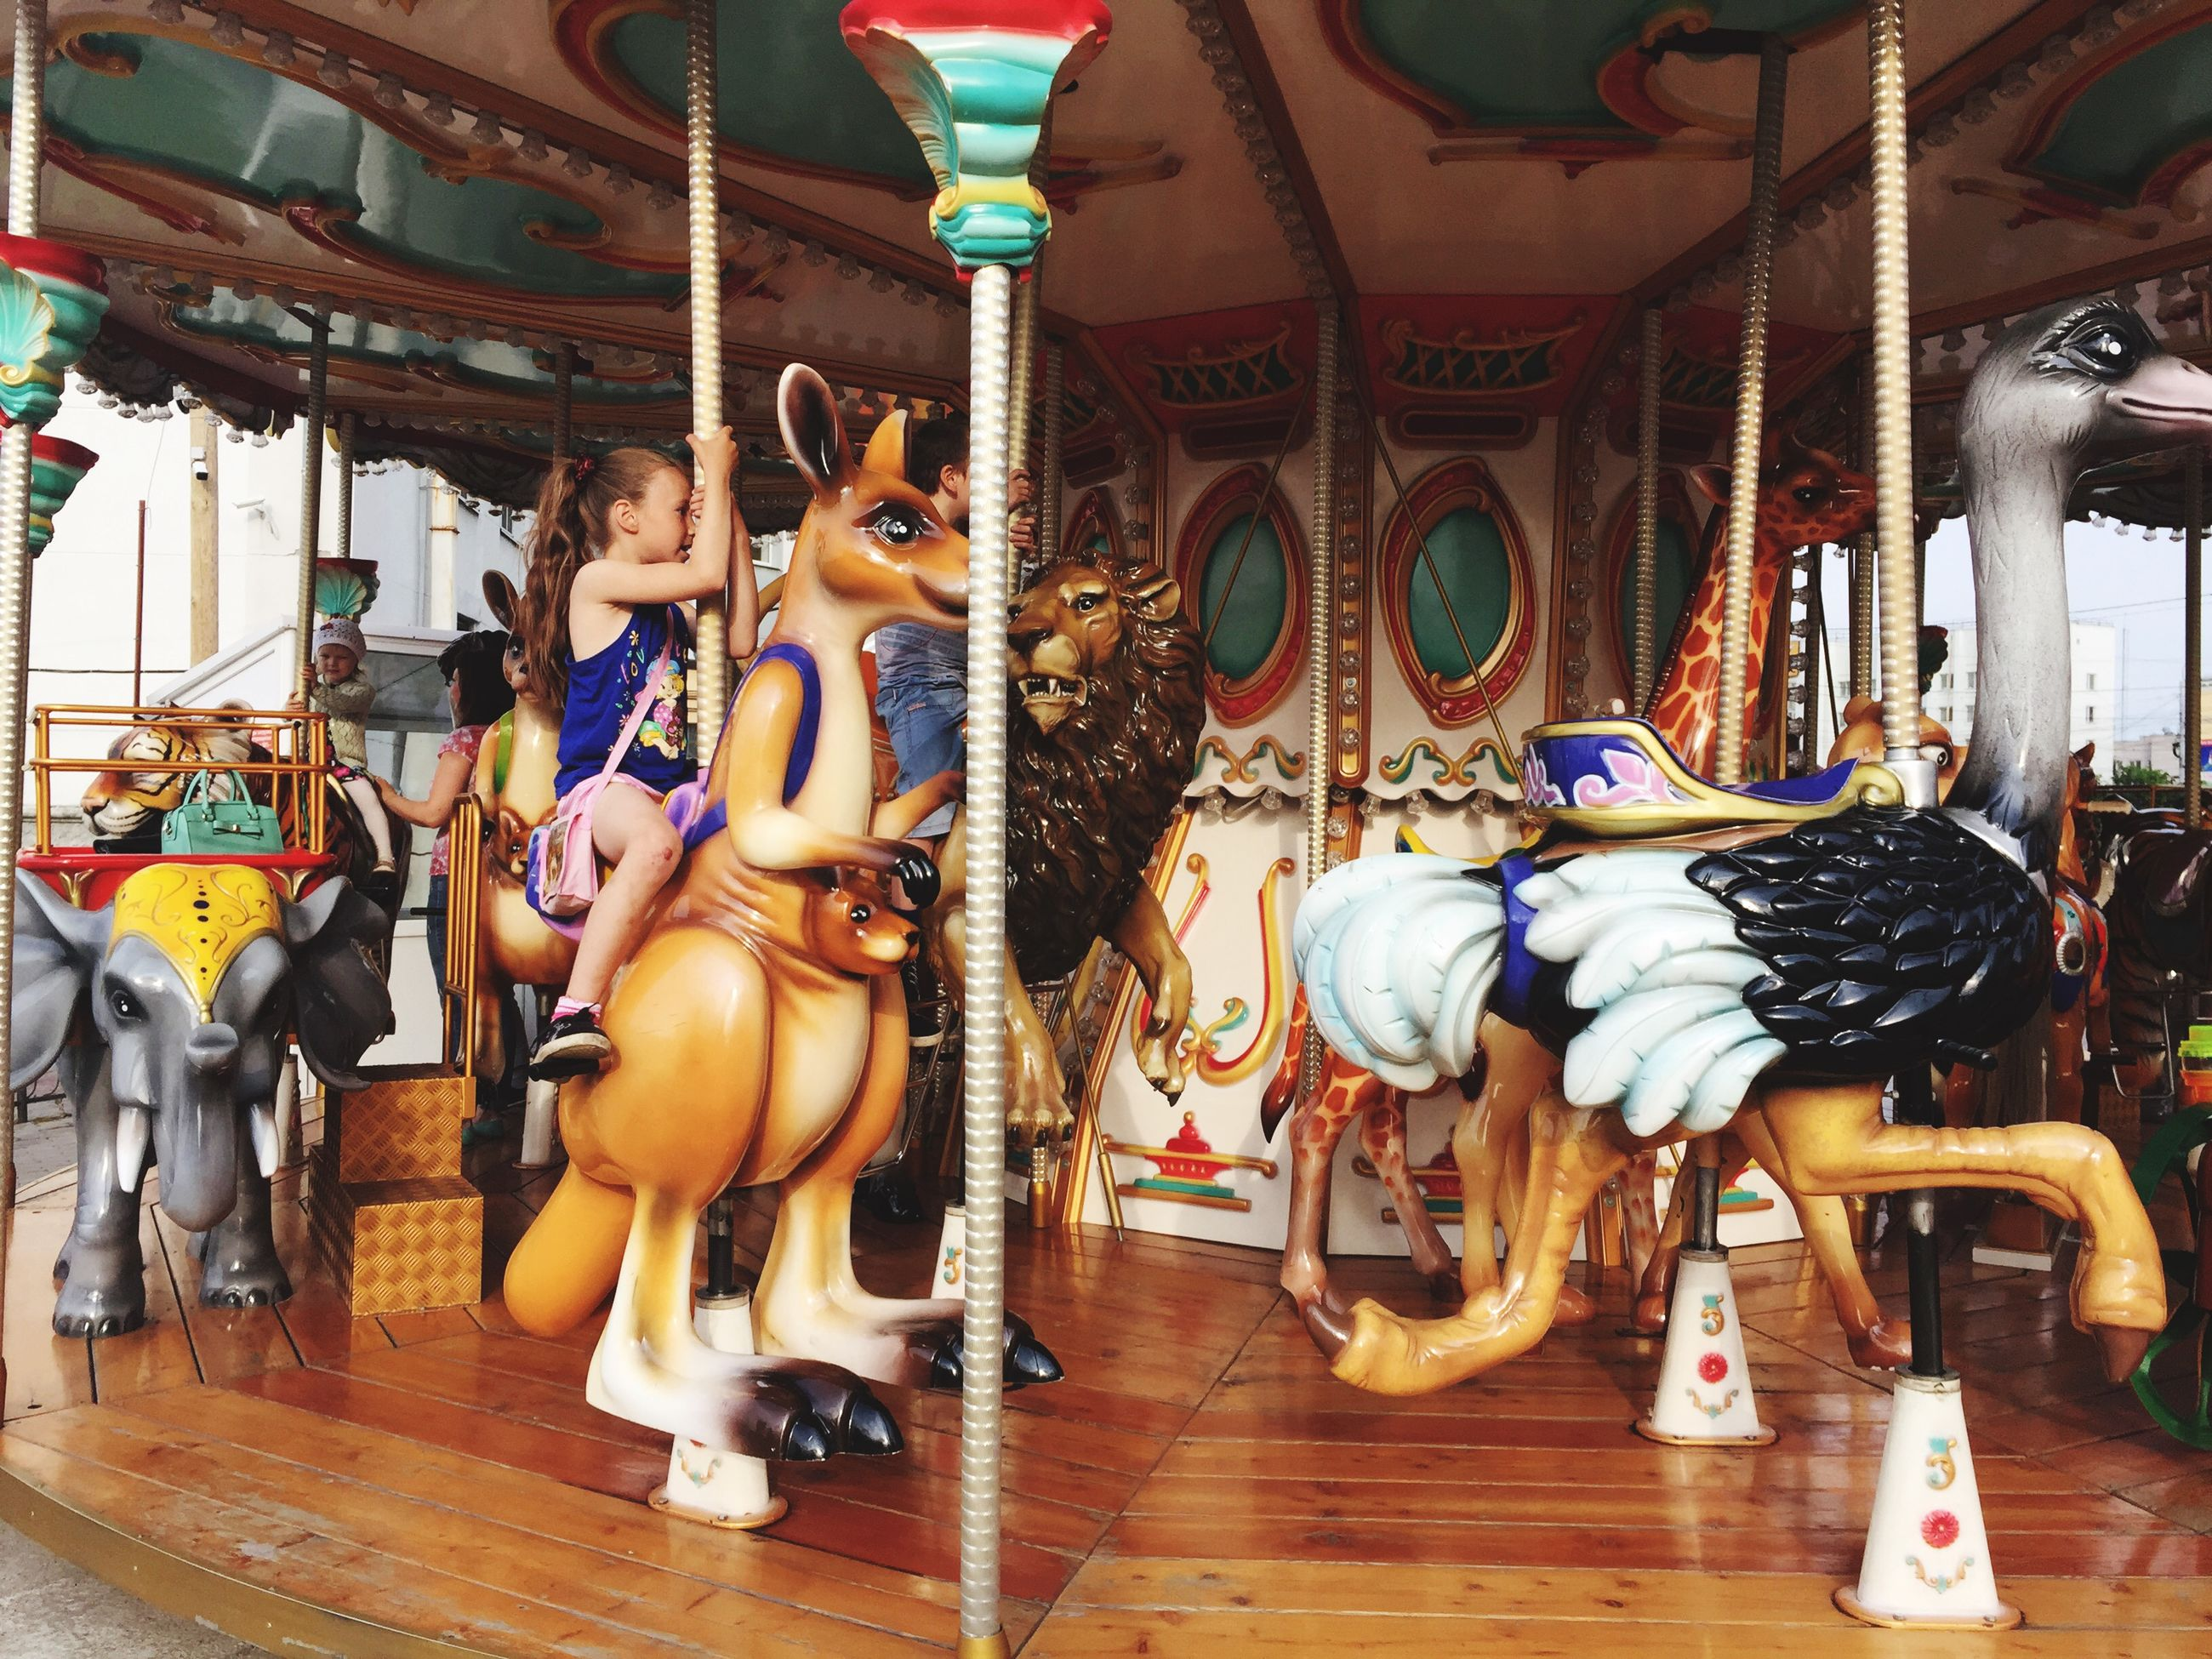 indoors, art and craft, art, animal representation, creativity, human representation, arts culture and entertainment, sculpture, carousel, statue, multi colored, amusement park, cultures, decoration, leisure activity, hanging, tradition